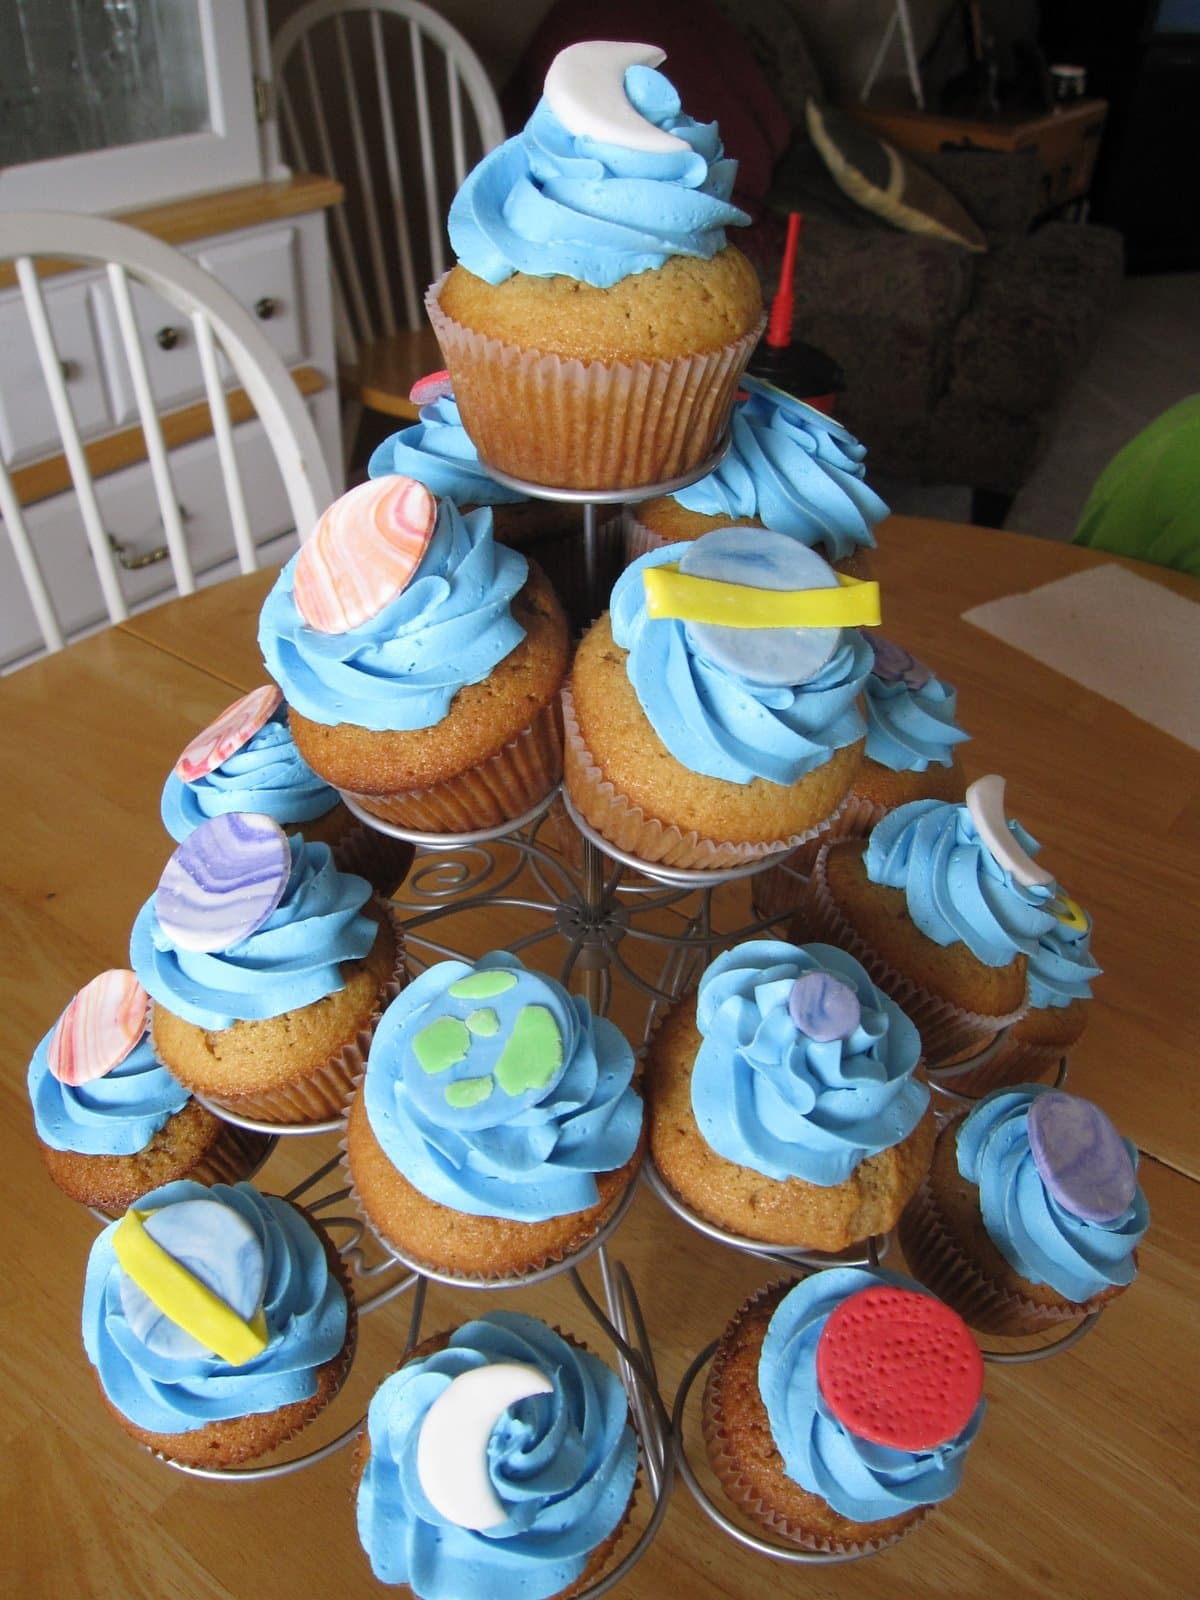 A variety of blue frosted space-themed cupcakes in a cupcake tower